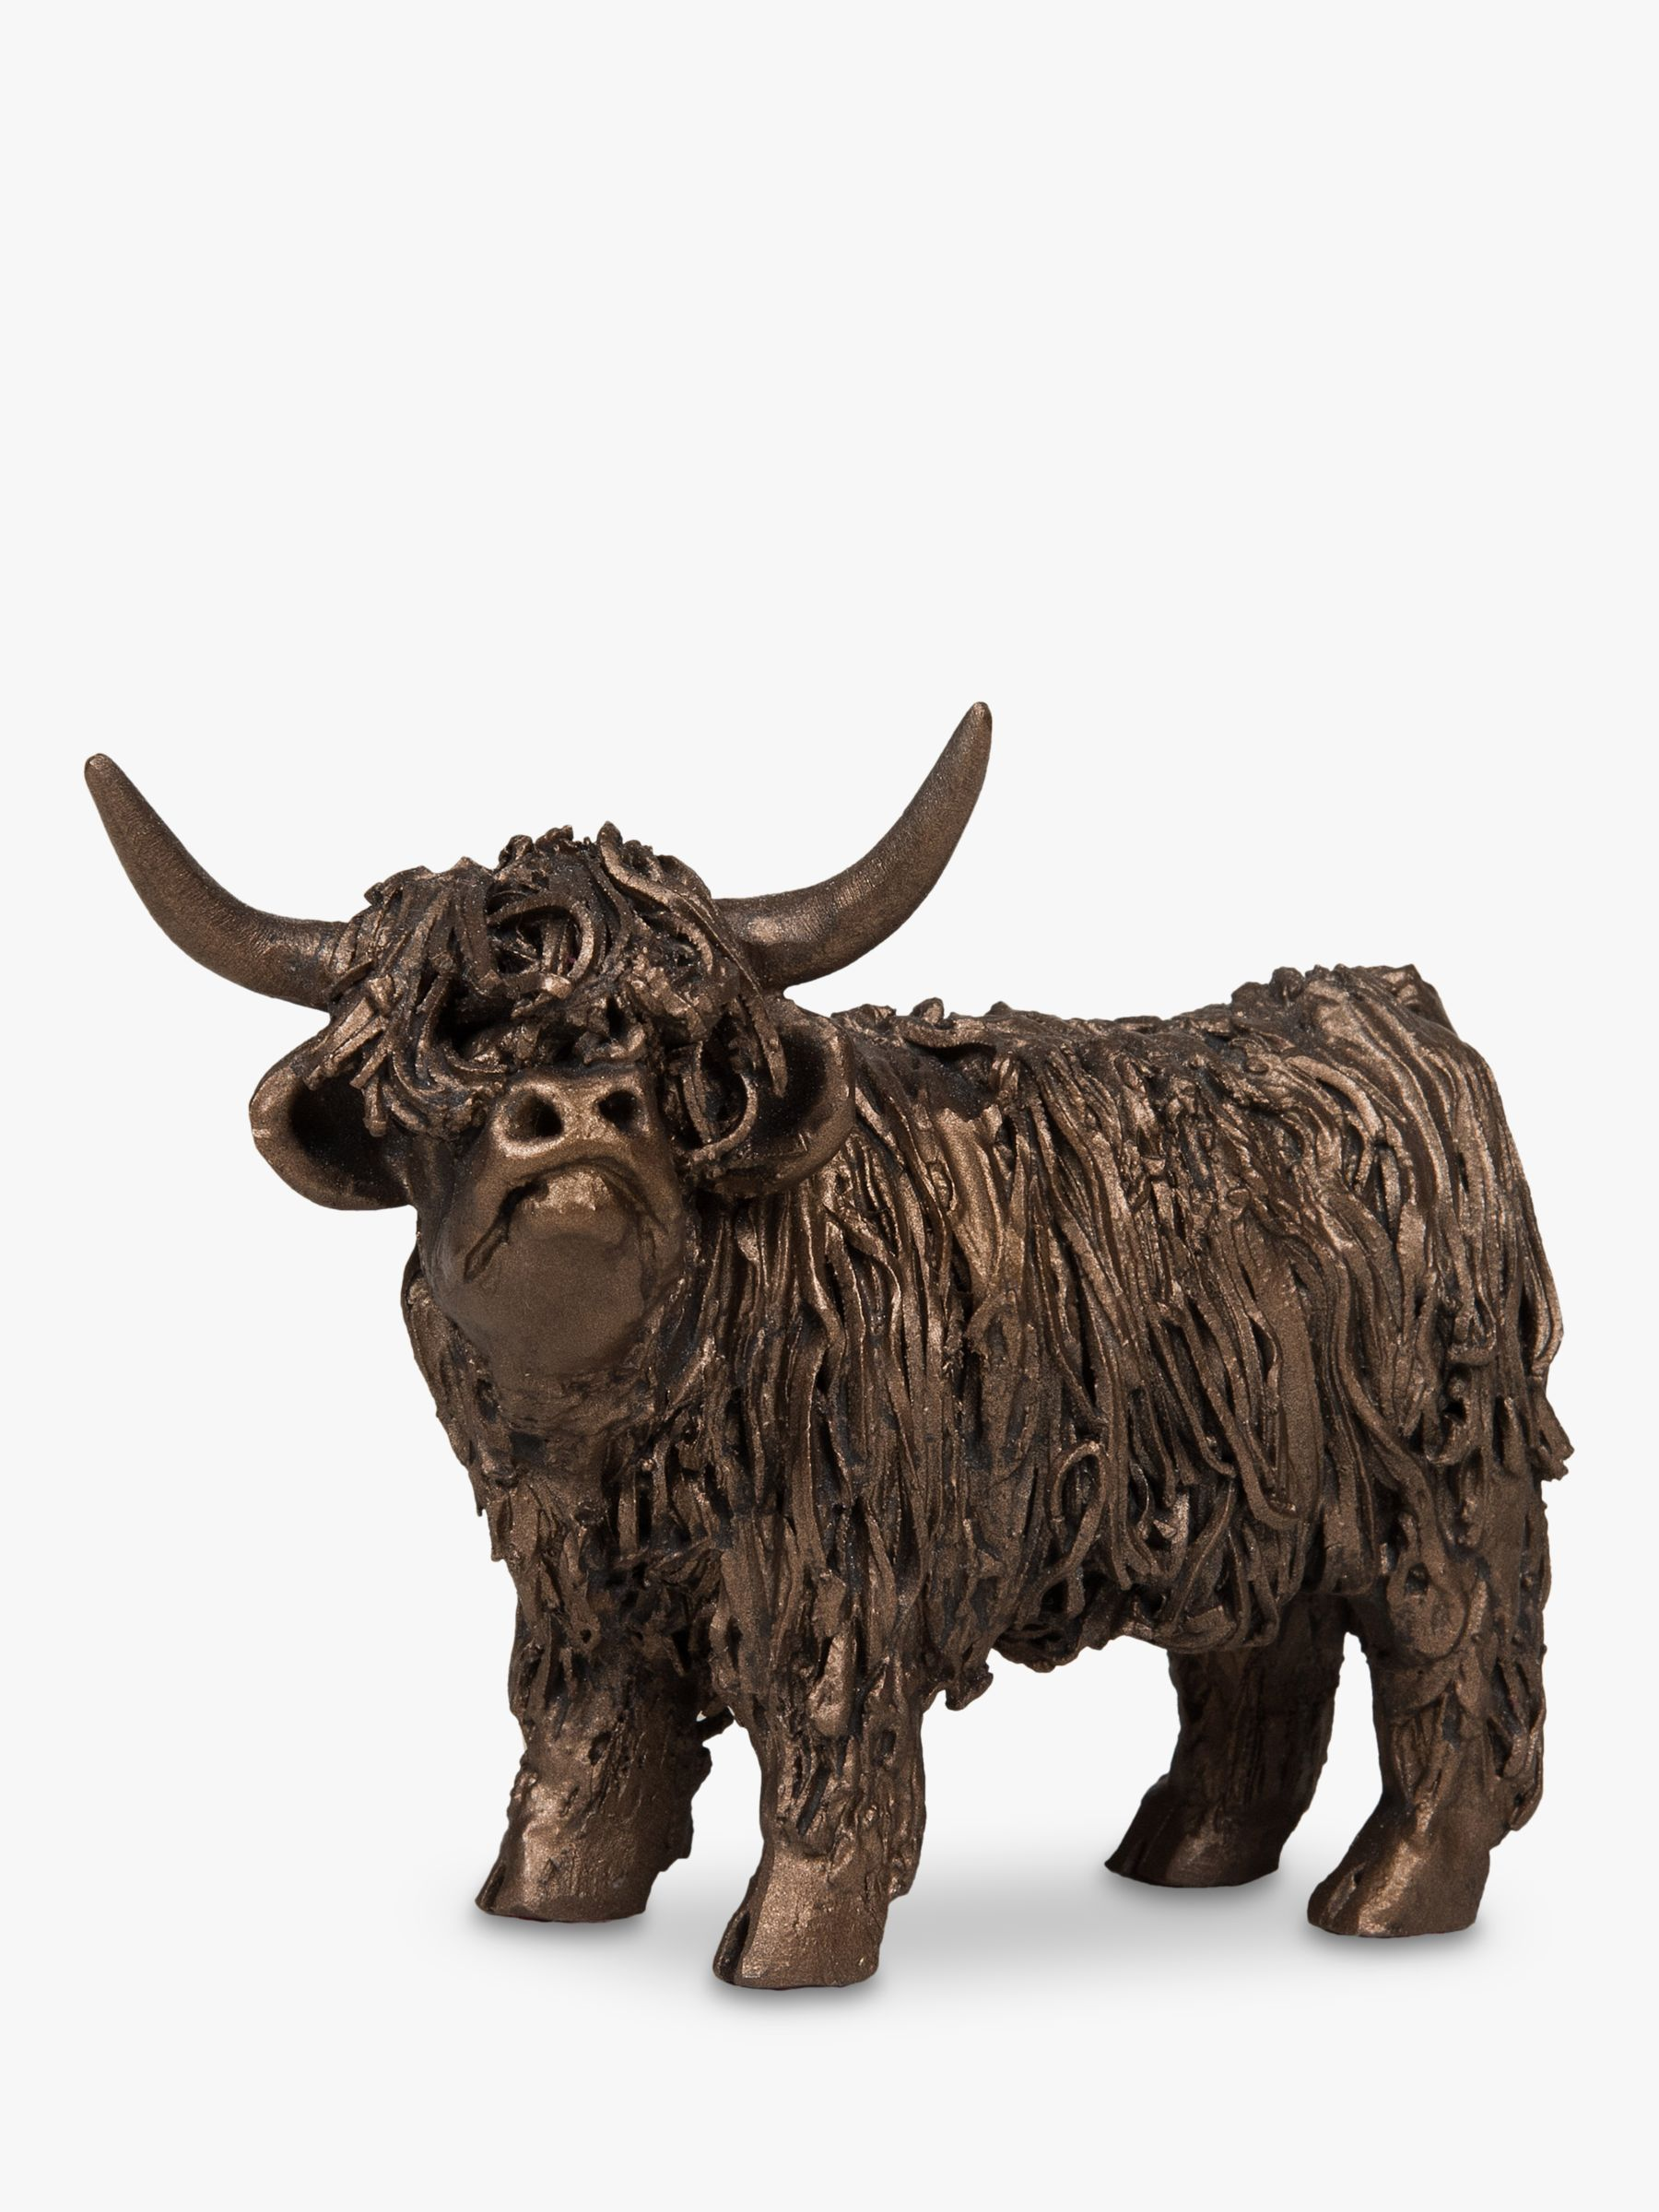 Frith Sculpture Frith Sculpture Highland Cow Sculpture, Bronze